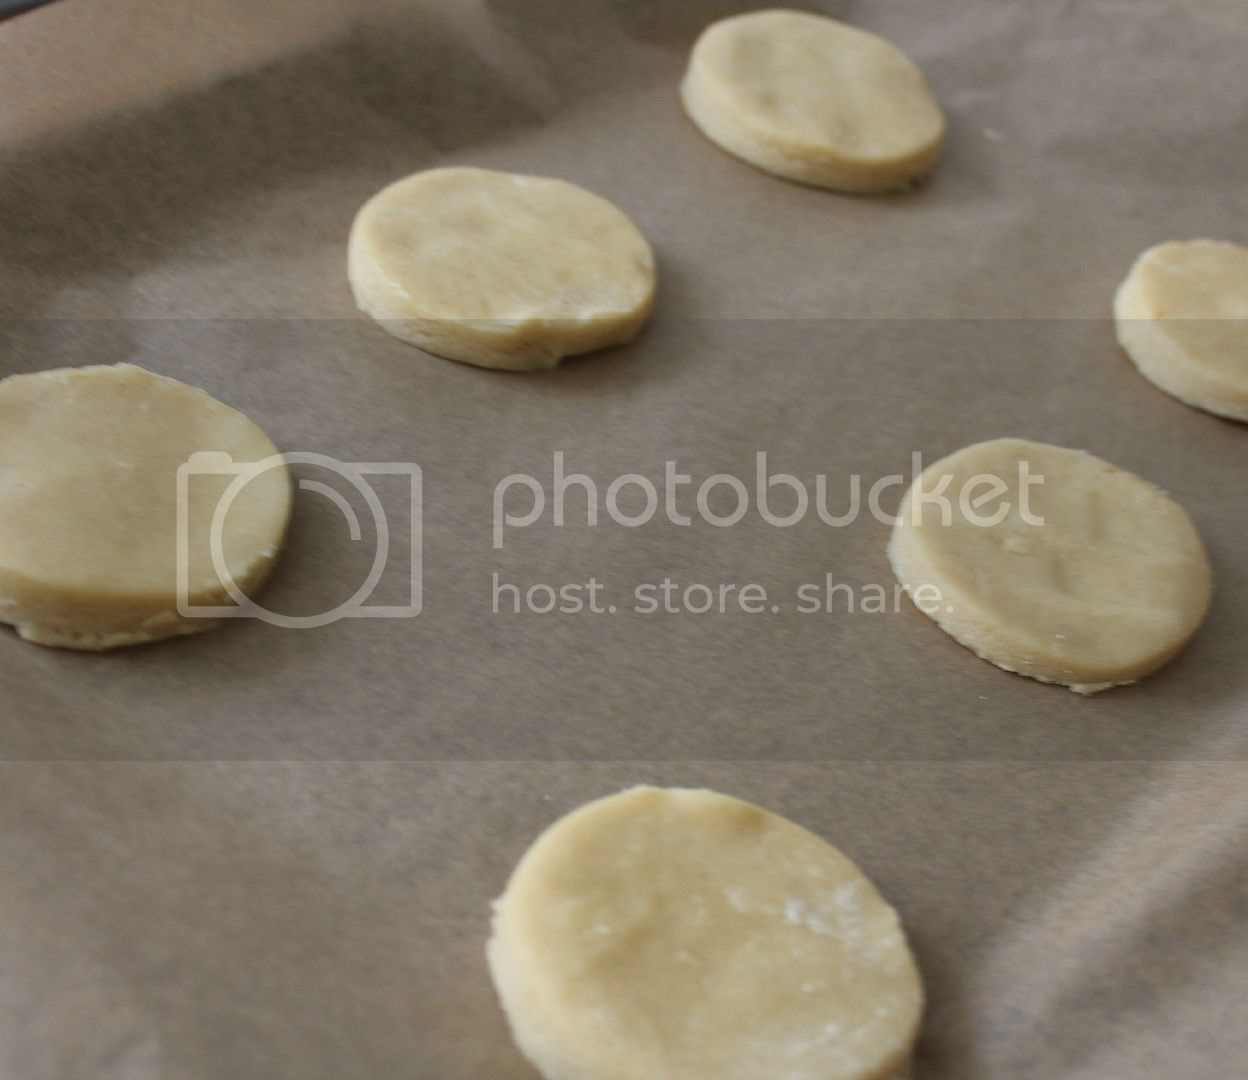 baking shortbread